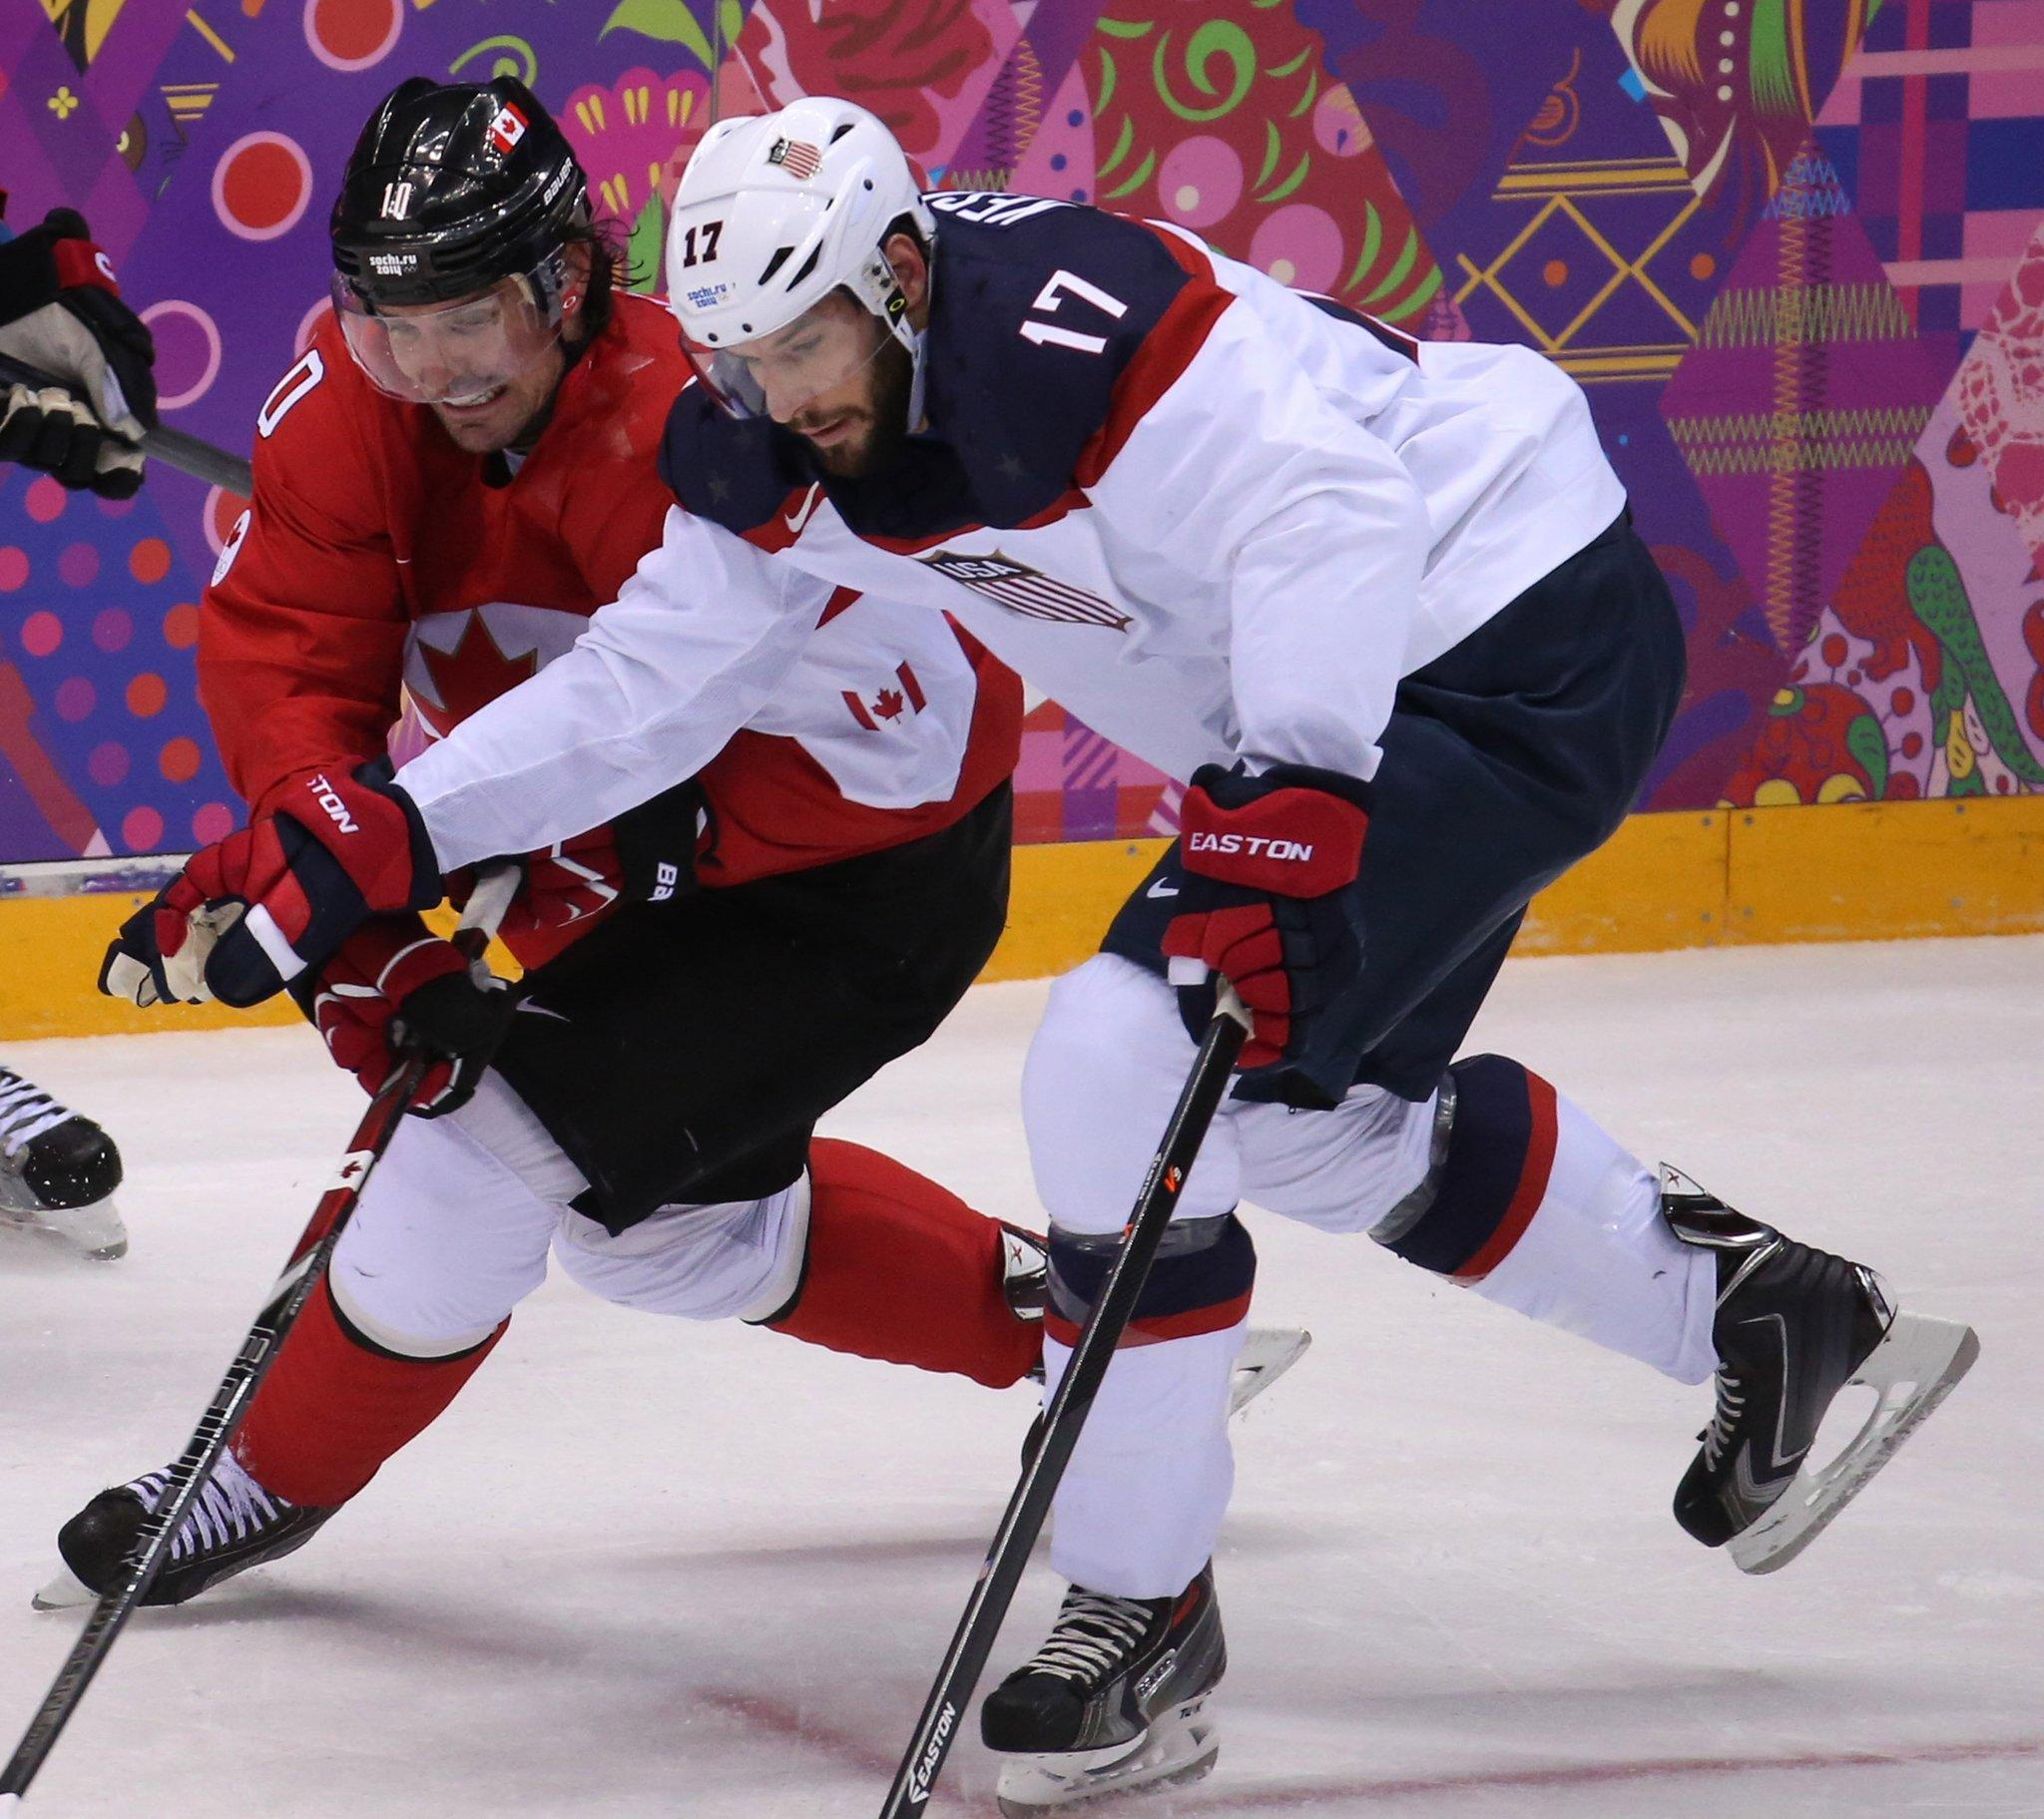 Canada forward Patrick Sharp (left) and U.S. forward Ryan Kesler fight for the puck during Friday's game.